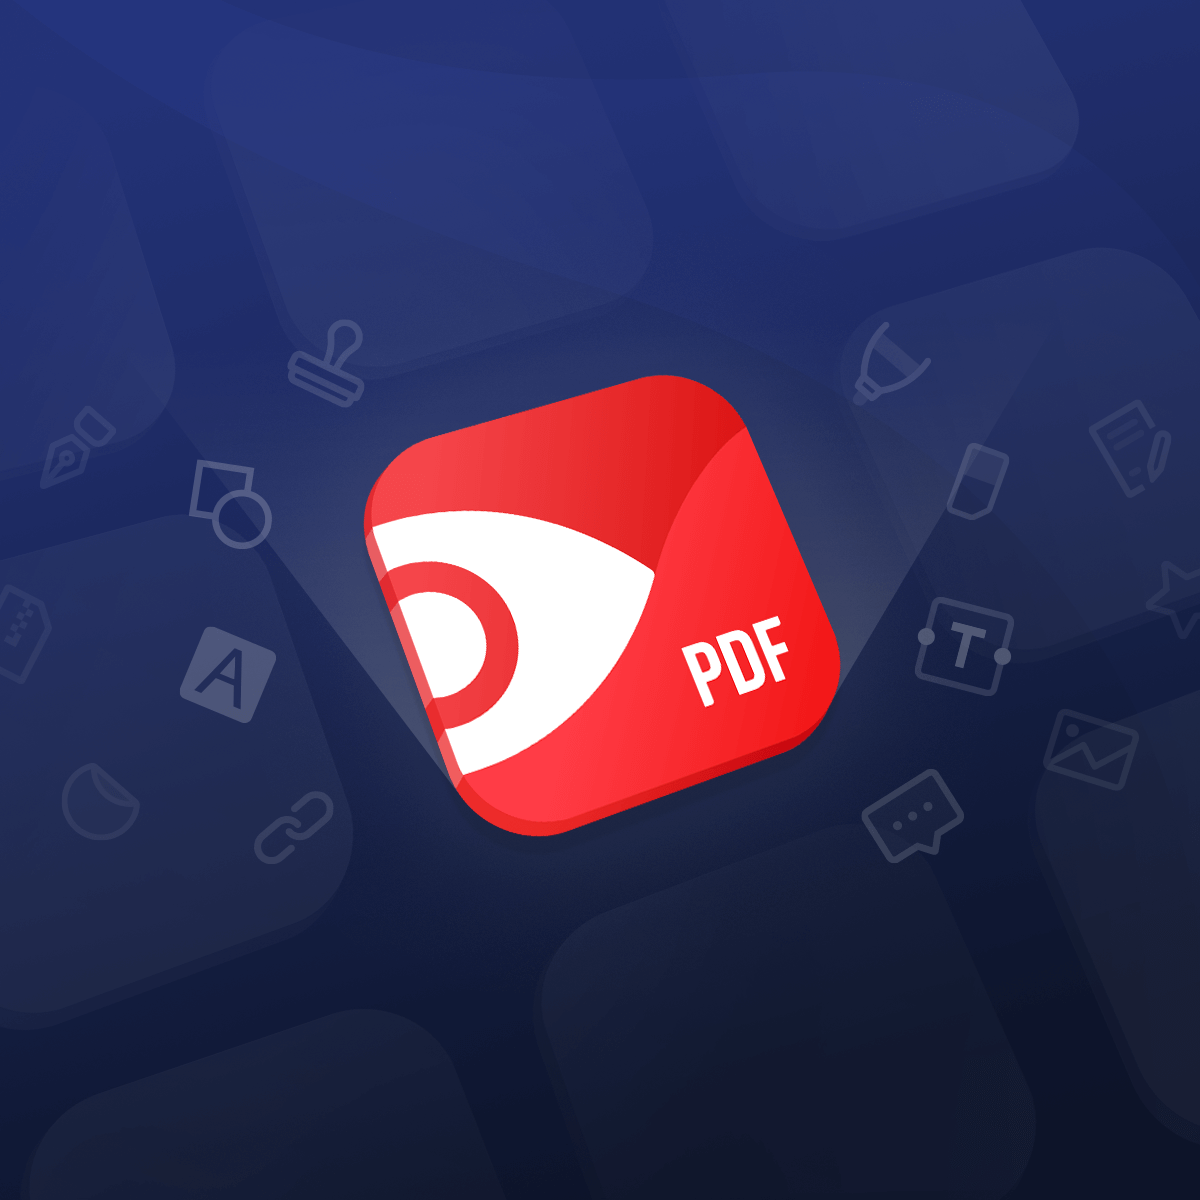 Convert iPhone photo to PDF | Convert files to PDF on iPhone